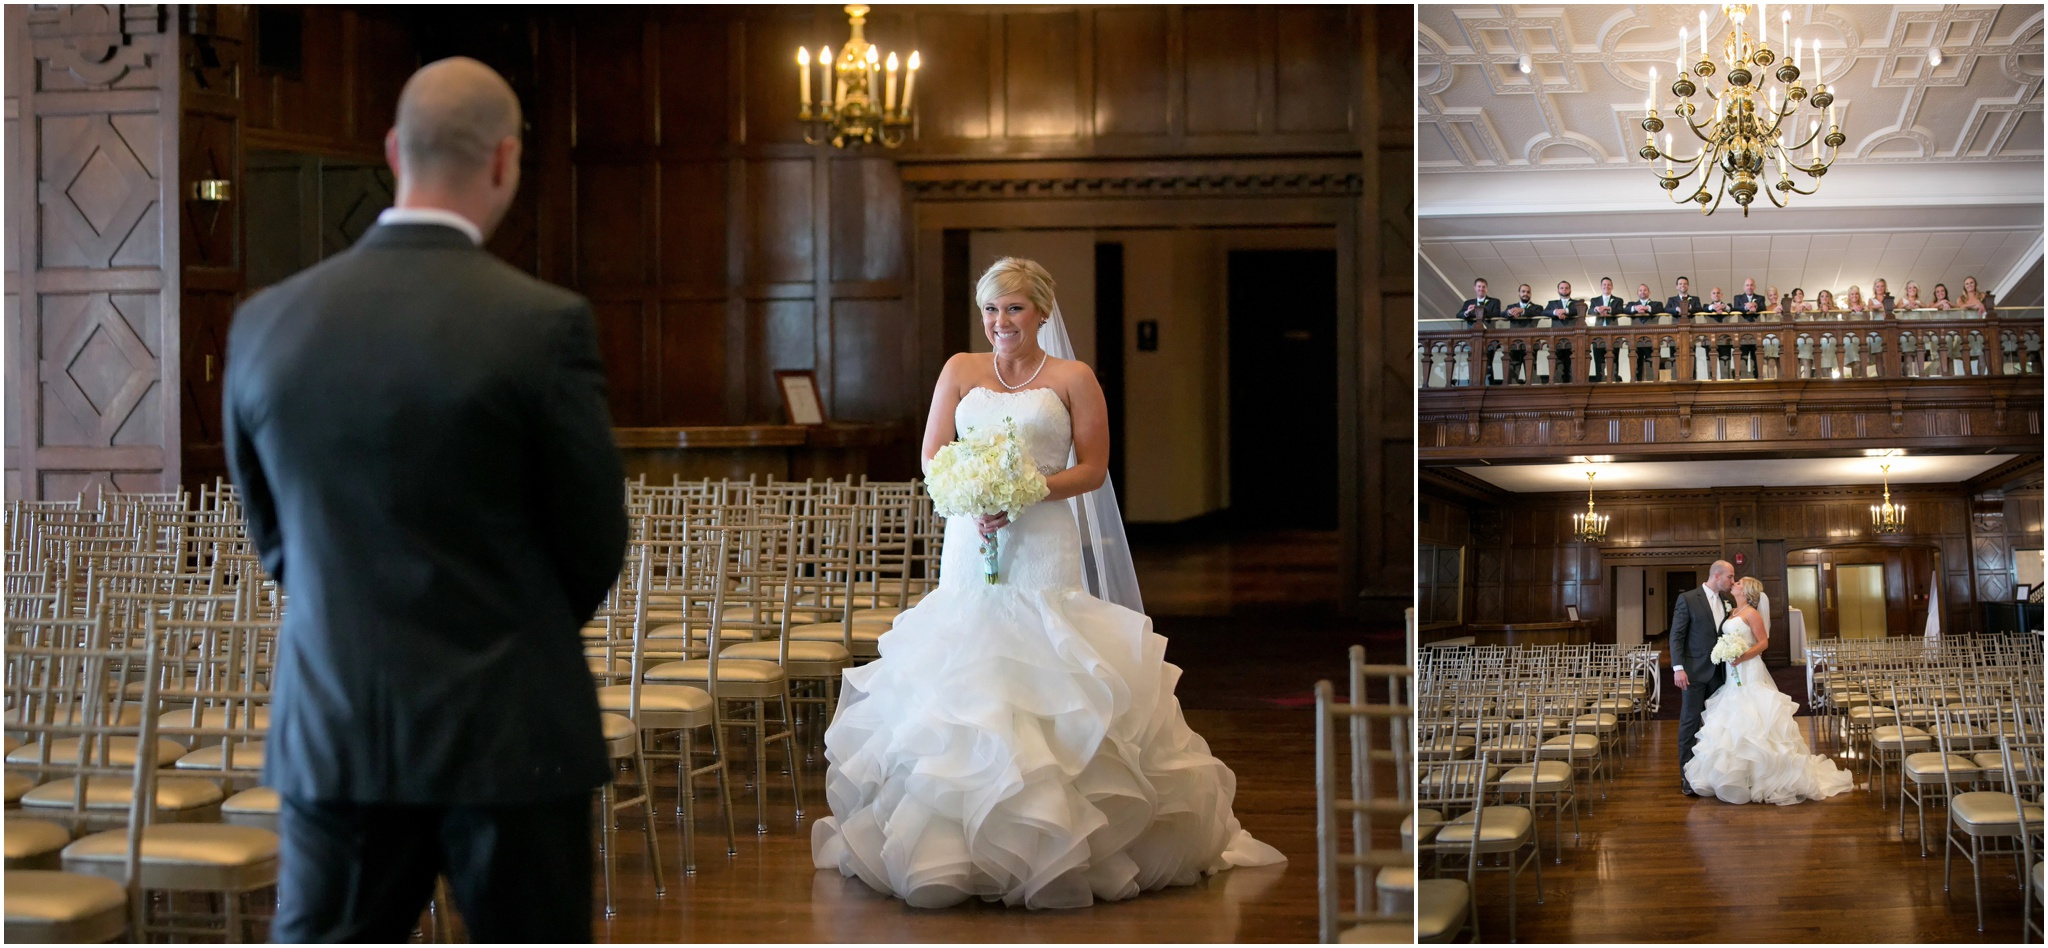 Baltimoreclueweddingphotographerkansascity 0007 Jpg